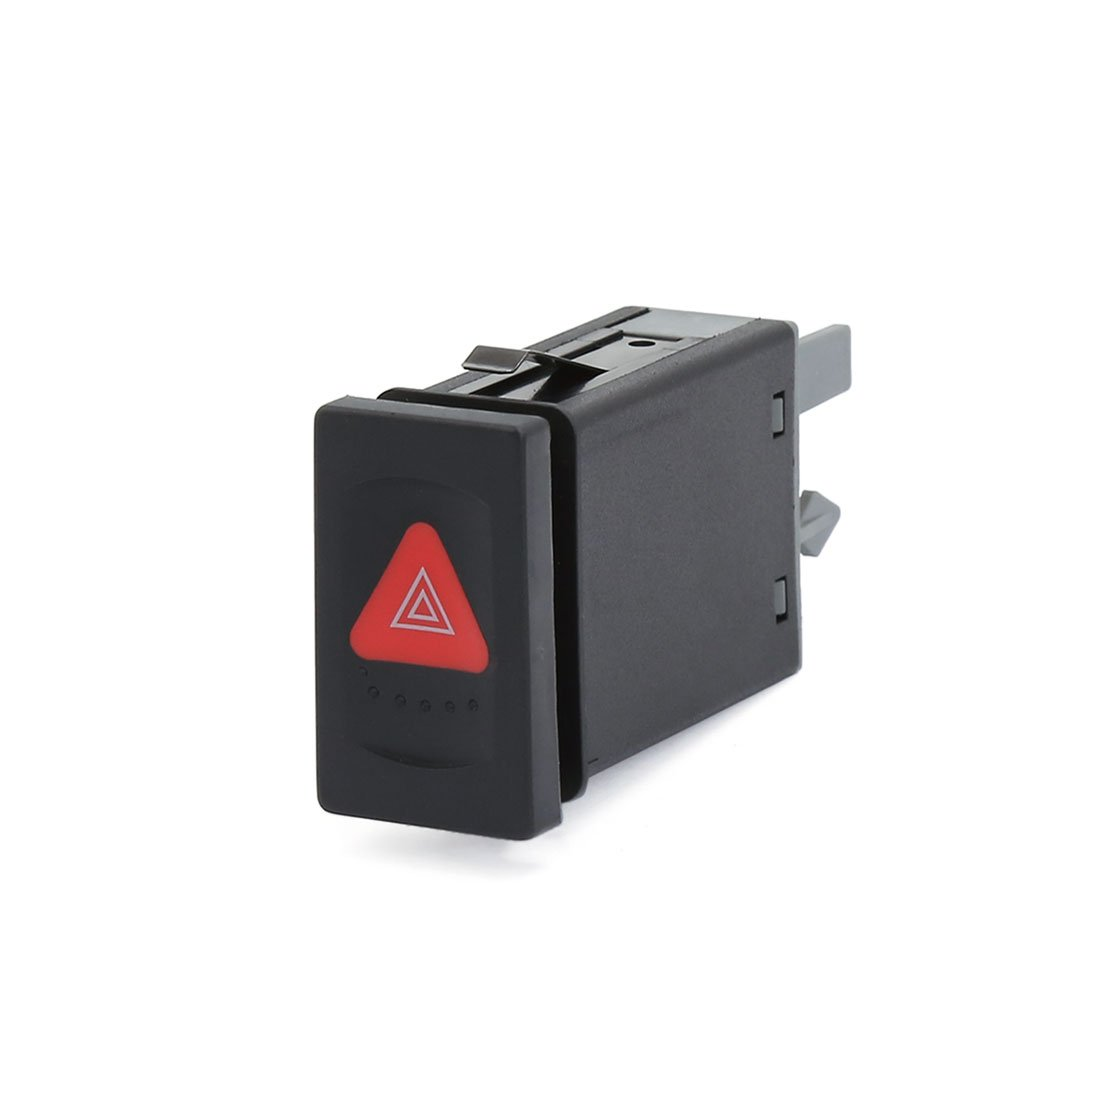 Uxcell a15121000ux0720 Hazard Warning Light Switch Unknown